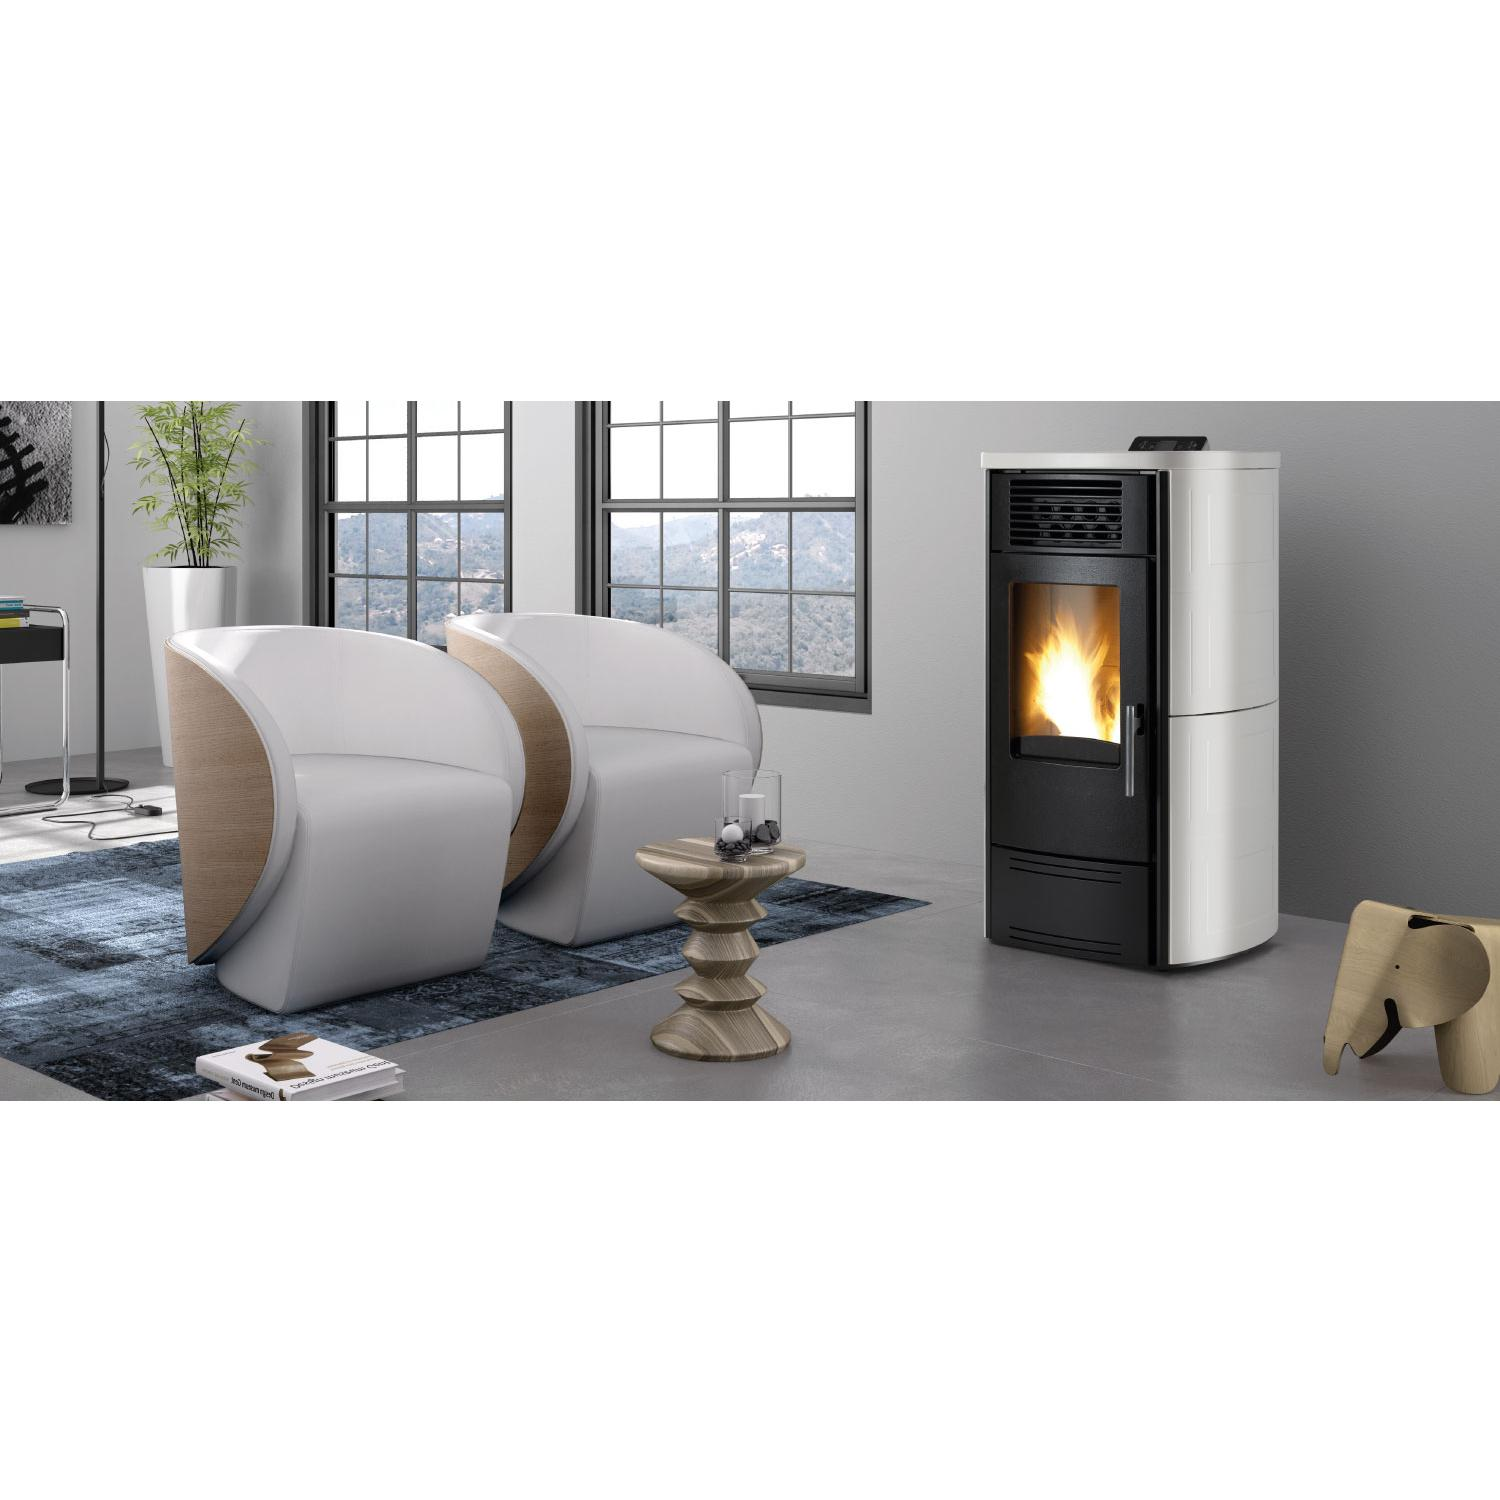 Stufa a pellet Karmek One Valencia plus  11 kw